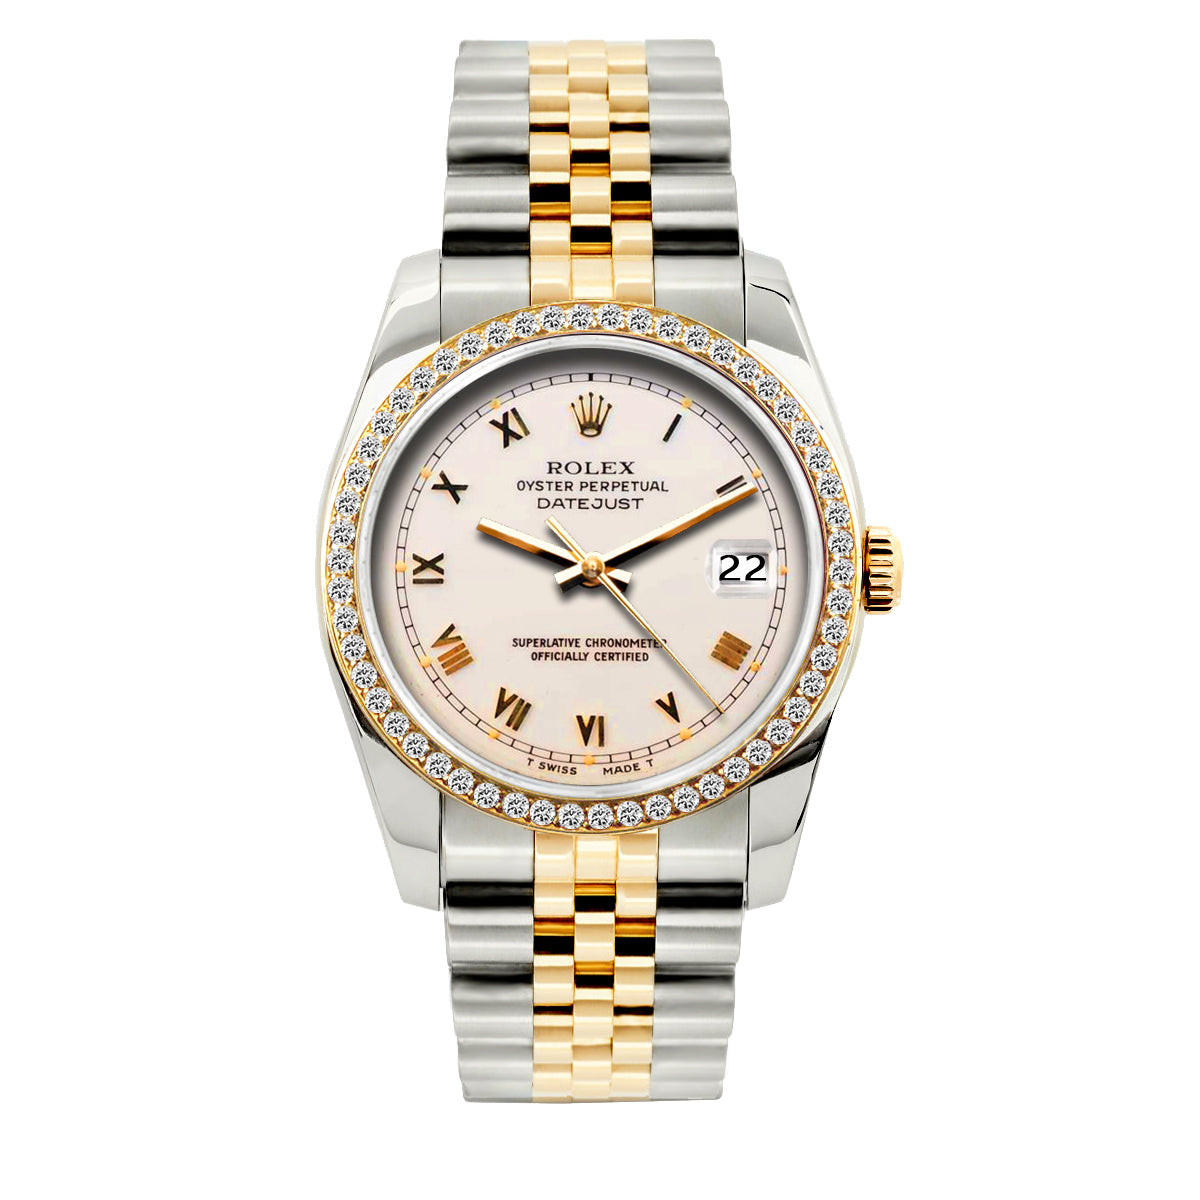 Rolex Datejust 36mm Yellow Gold and Stainless Steel Bracelet Pink Pastel Dial w/ Diamond Bezel